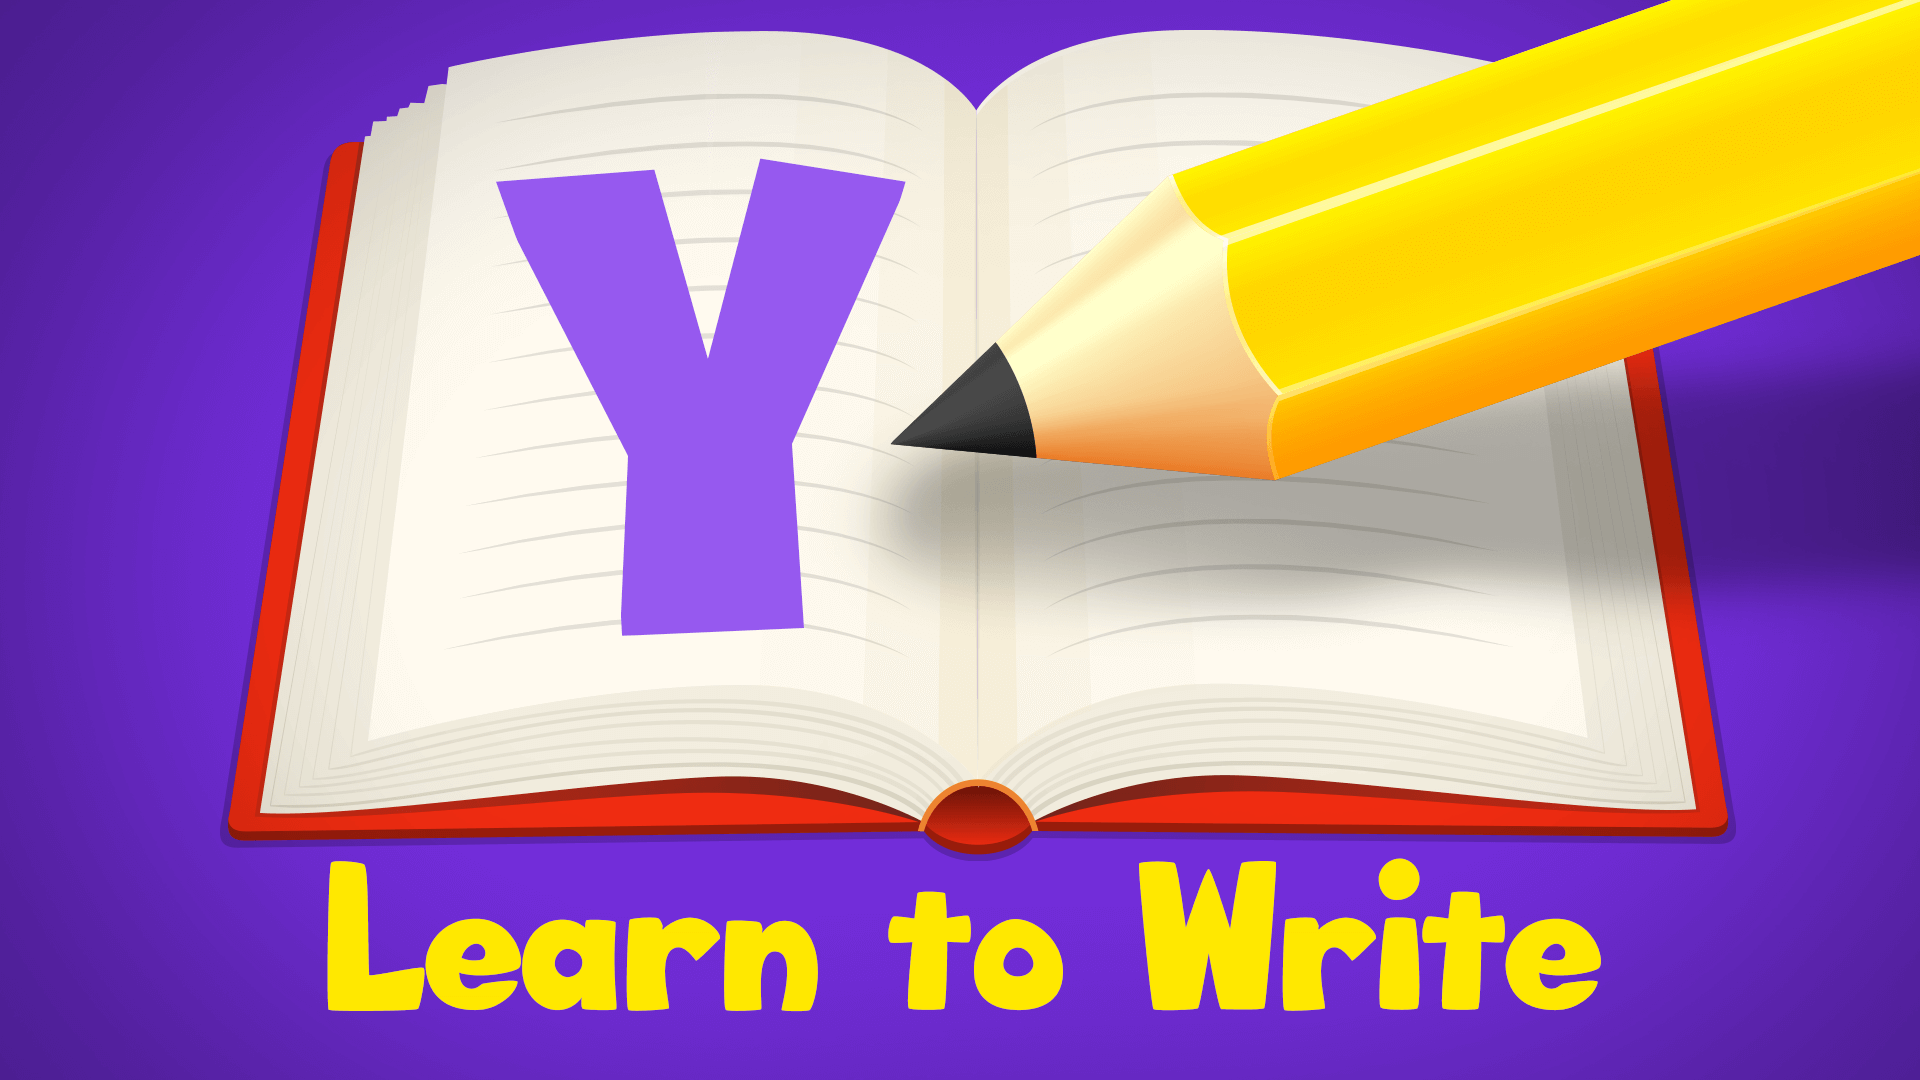 how to write capital letters